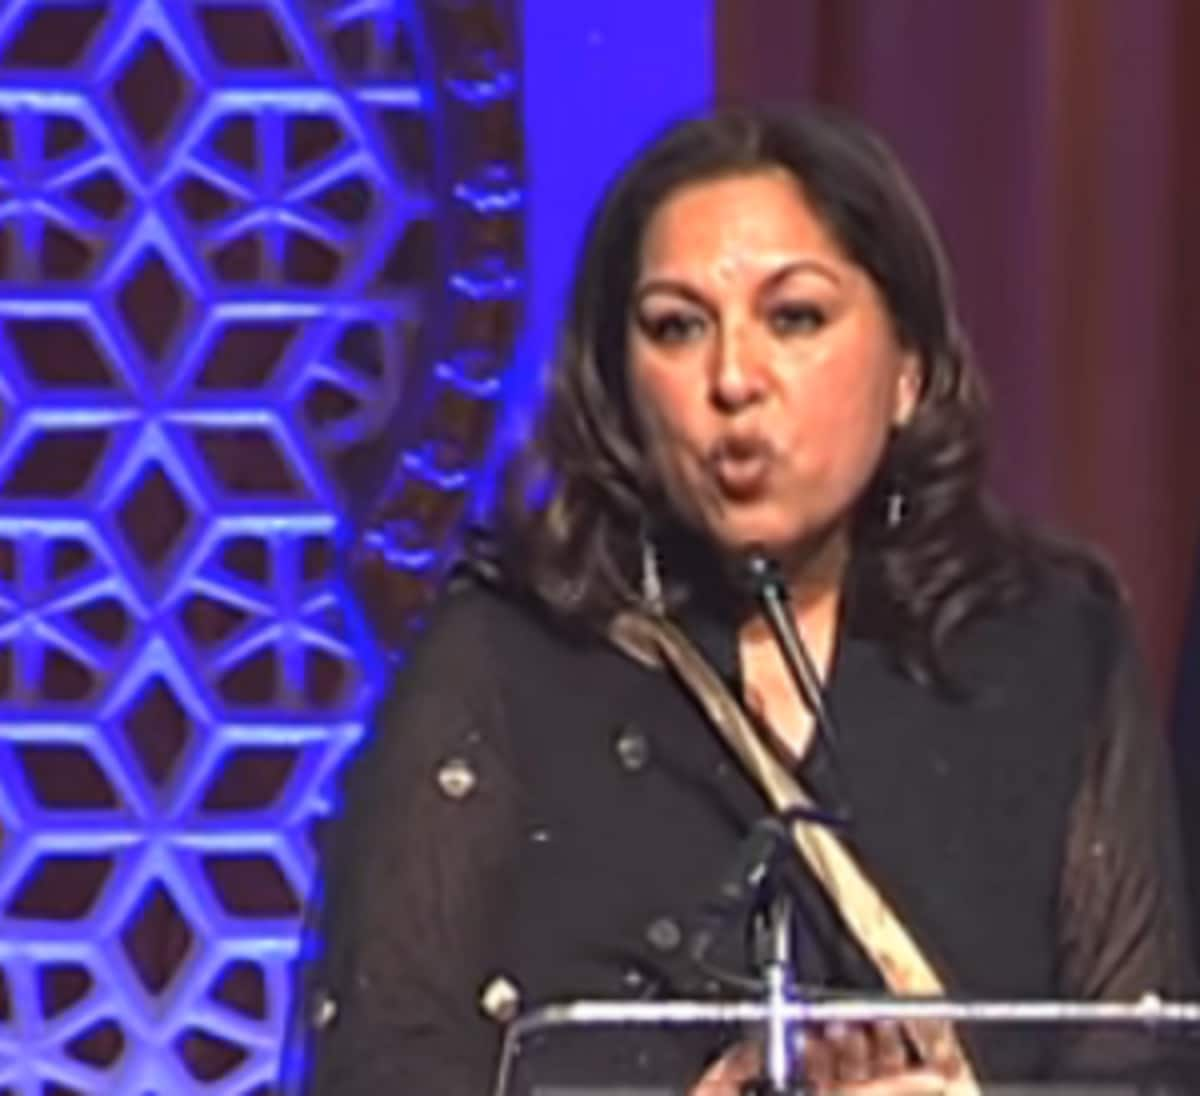 Neerja Sethi, who co-founded IT consulting and outsourcing firm Syntel with her husband Bharat Desai in 1980 is 23rd in the rankings. Her current net worth is $ 1 billion. (Source: You Tube)